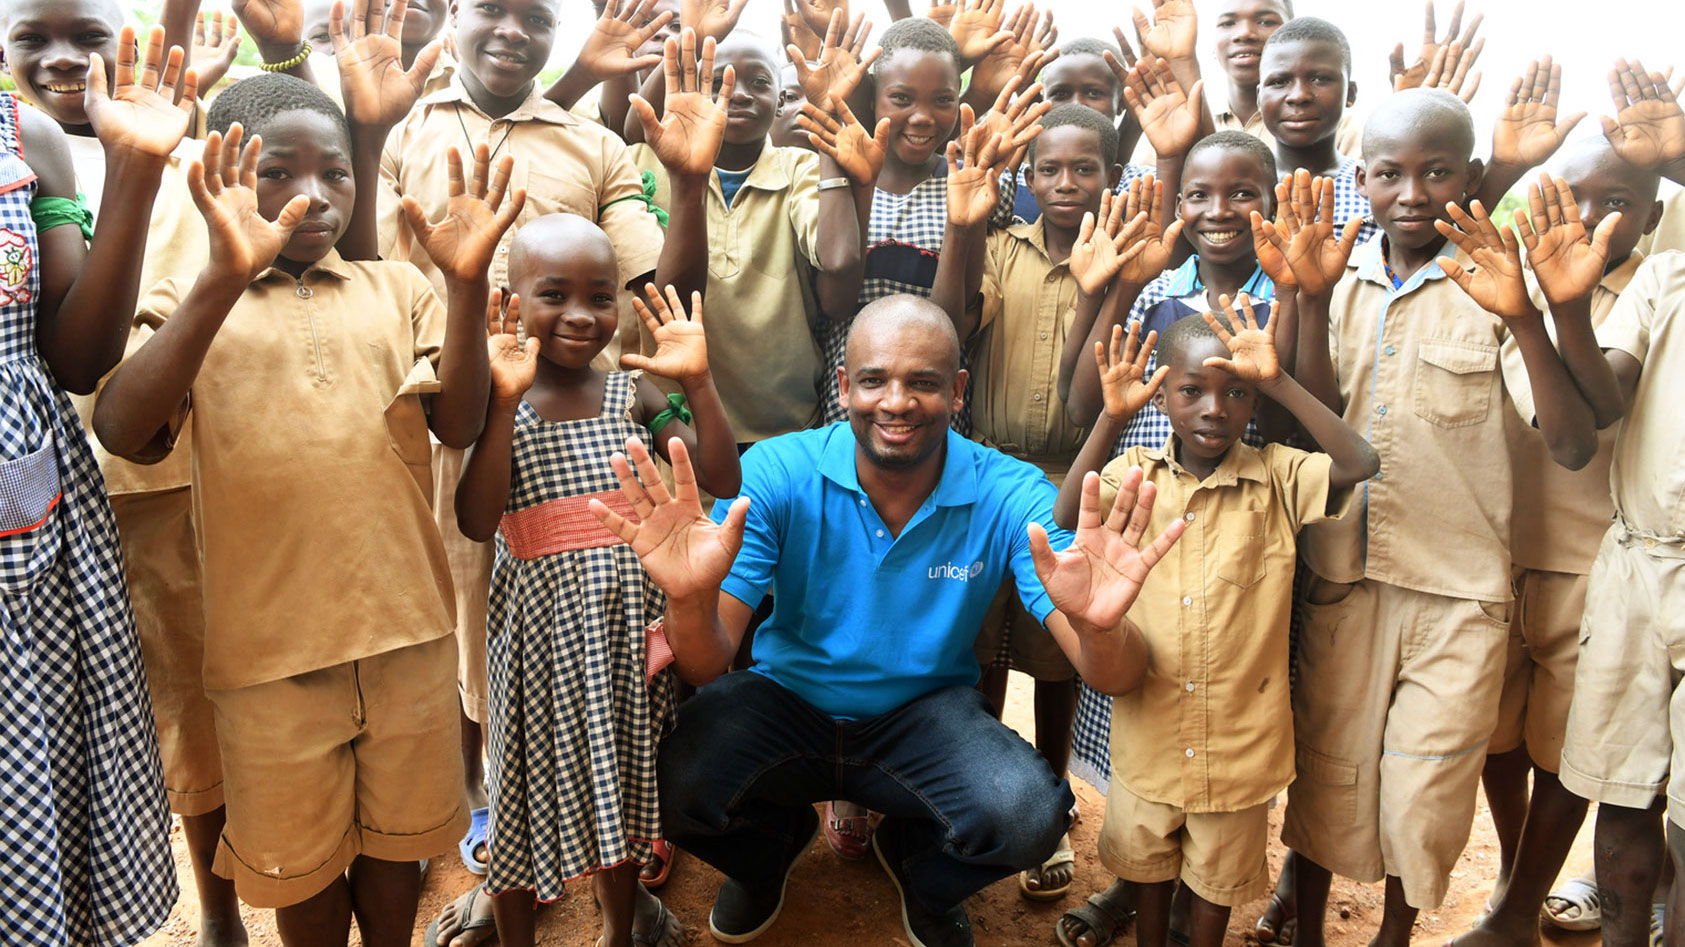 Aboubacar is crouching amidst a group of children. All are holding their hands up.